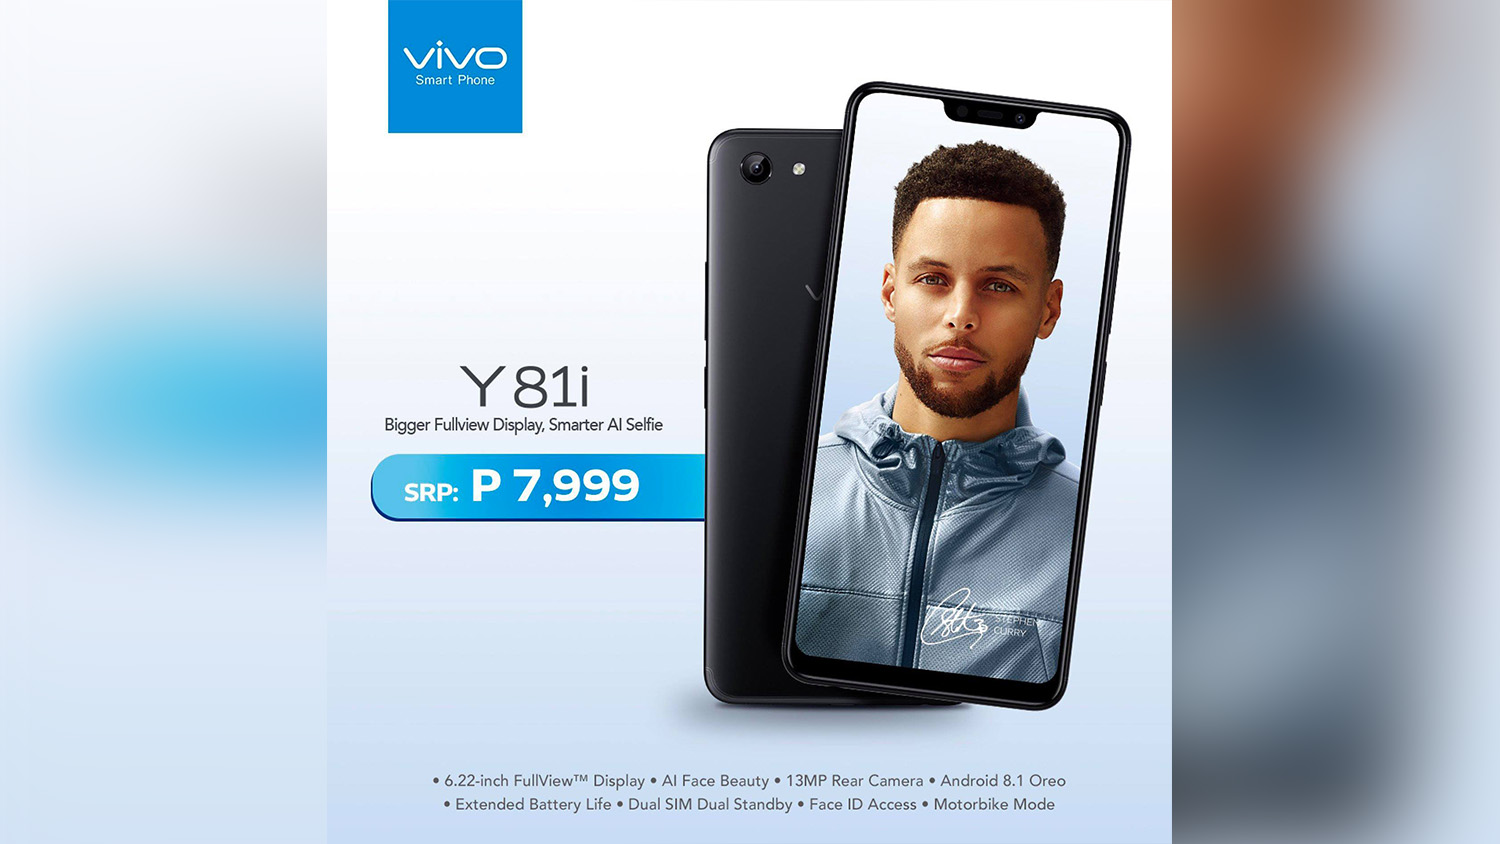 Vivo Y81i Specs, Features, & Price in the PH - Jam Online